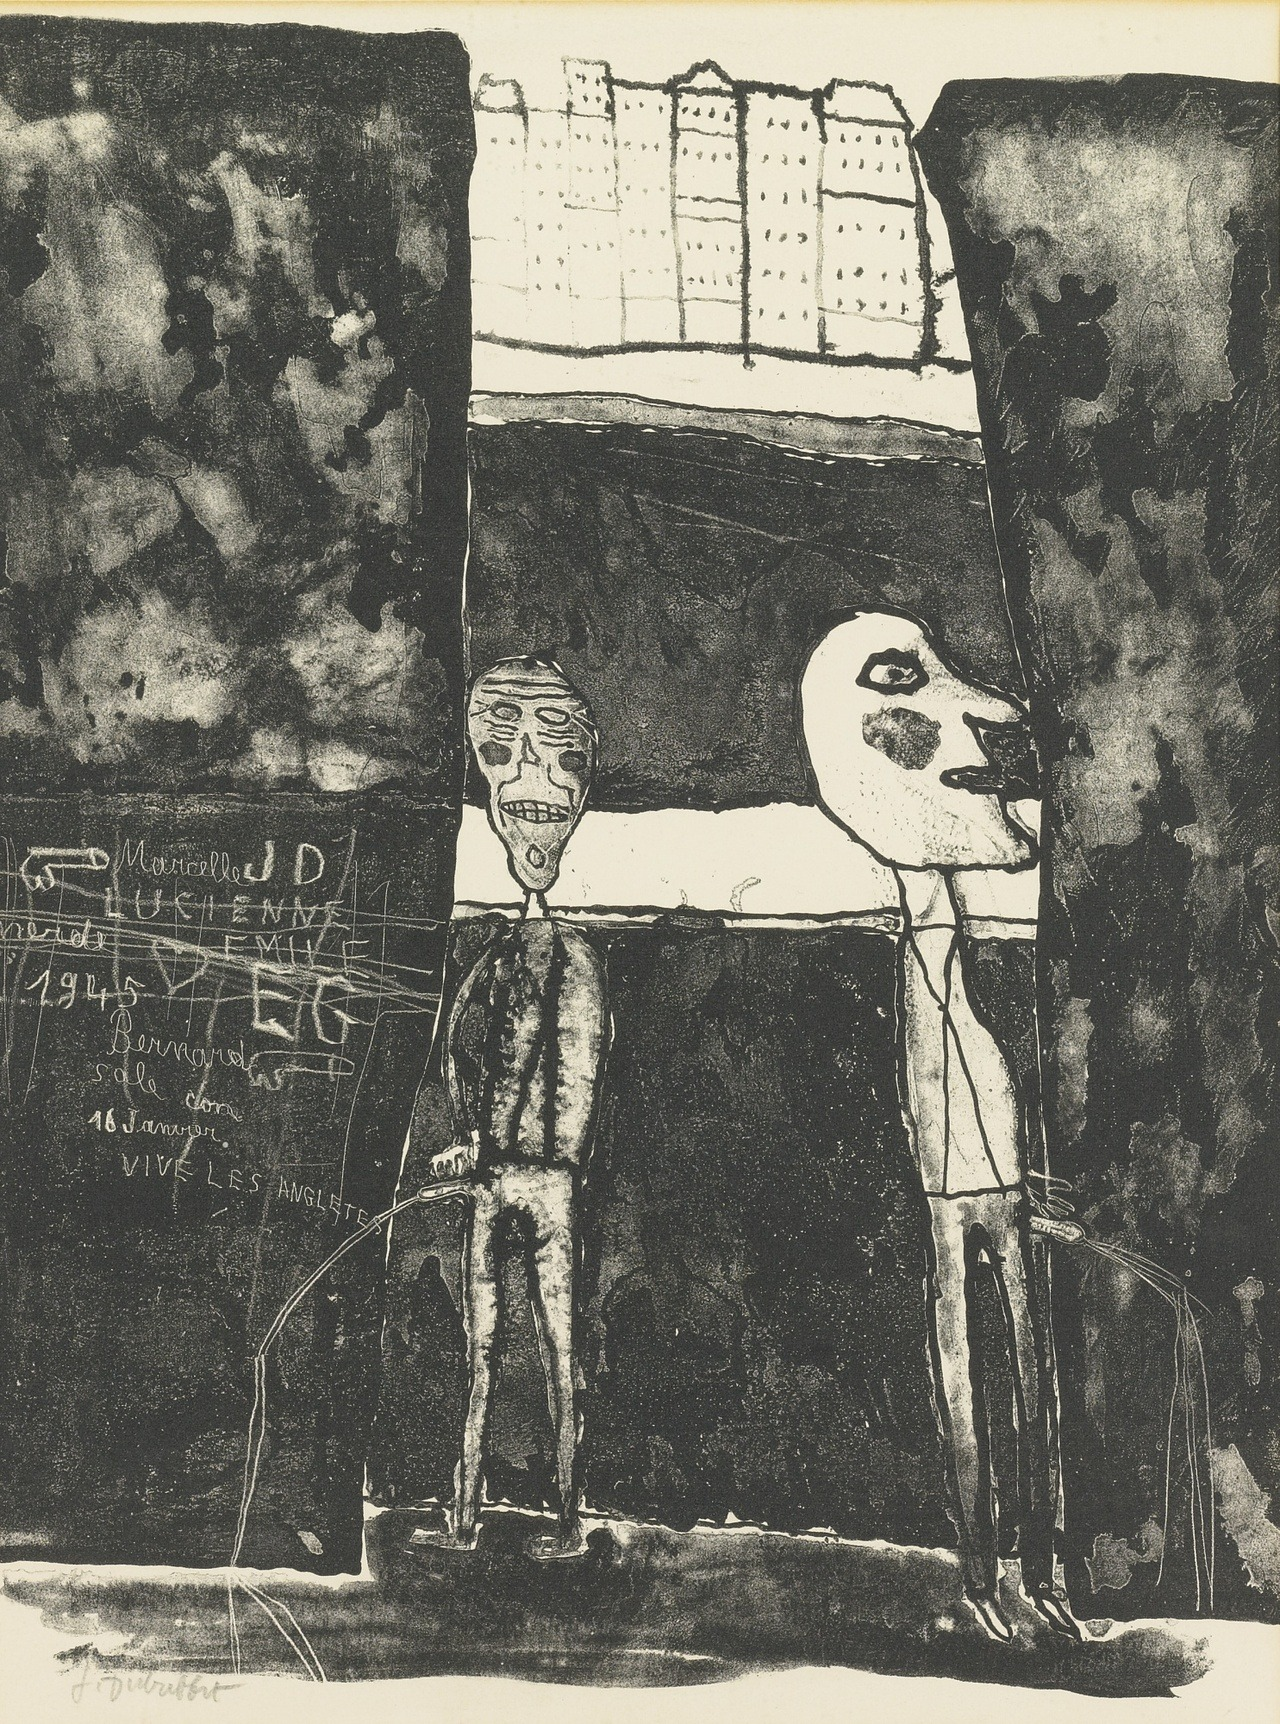 cruiseorbecruised:  blastedheath: Jean Dubuffet (French, 1901-1985), Pisseurs au mur, 1945. Lithograph on wove paper.